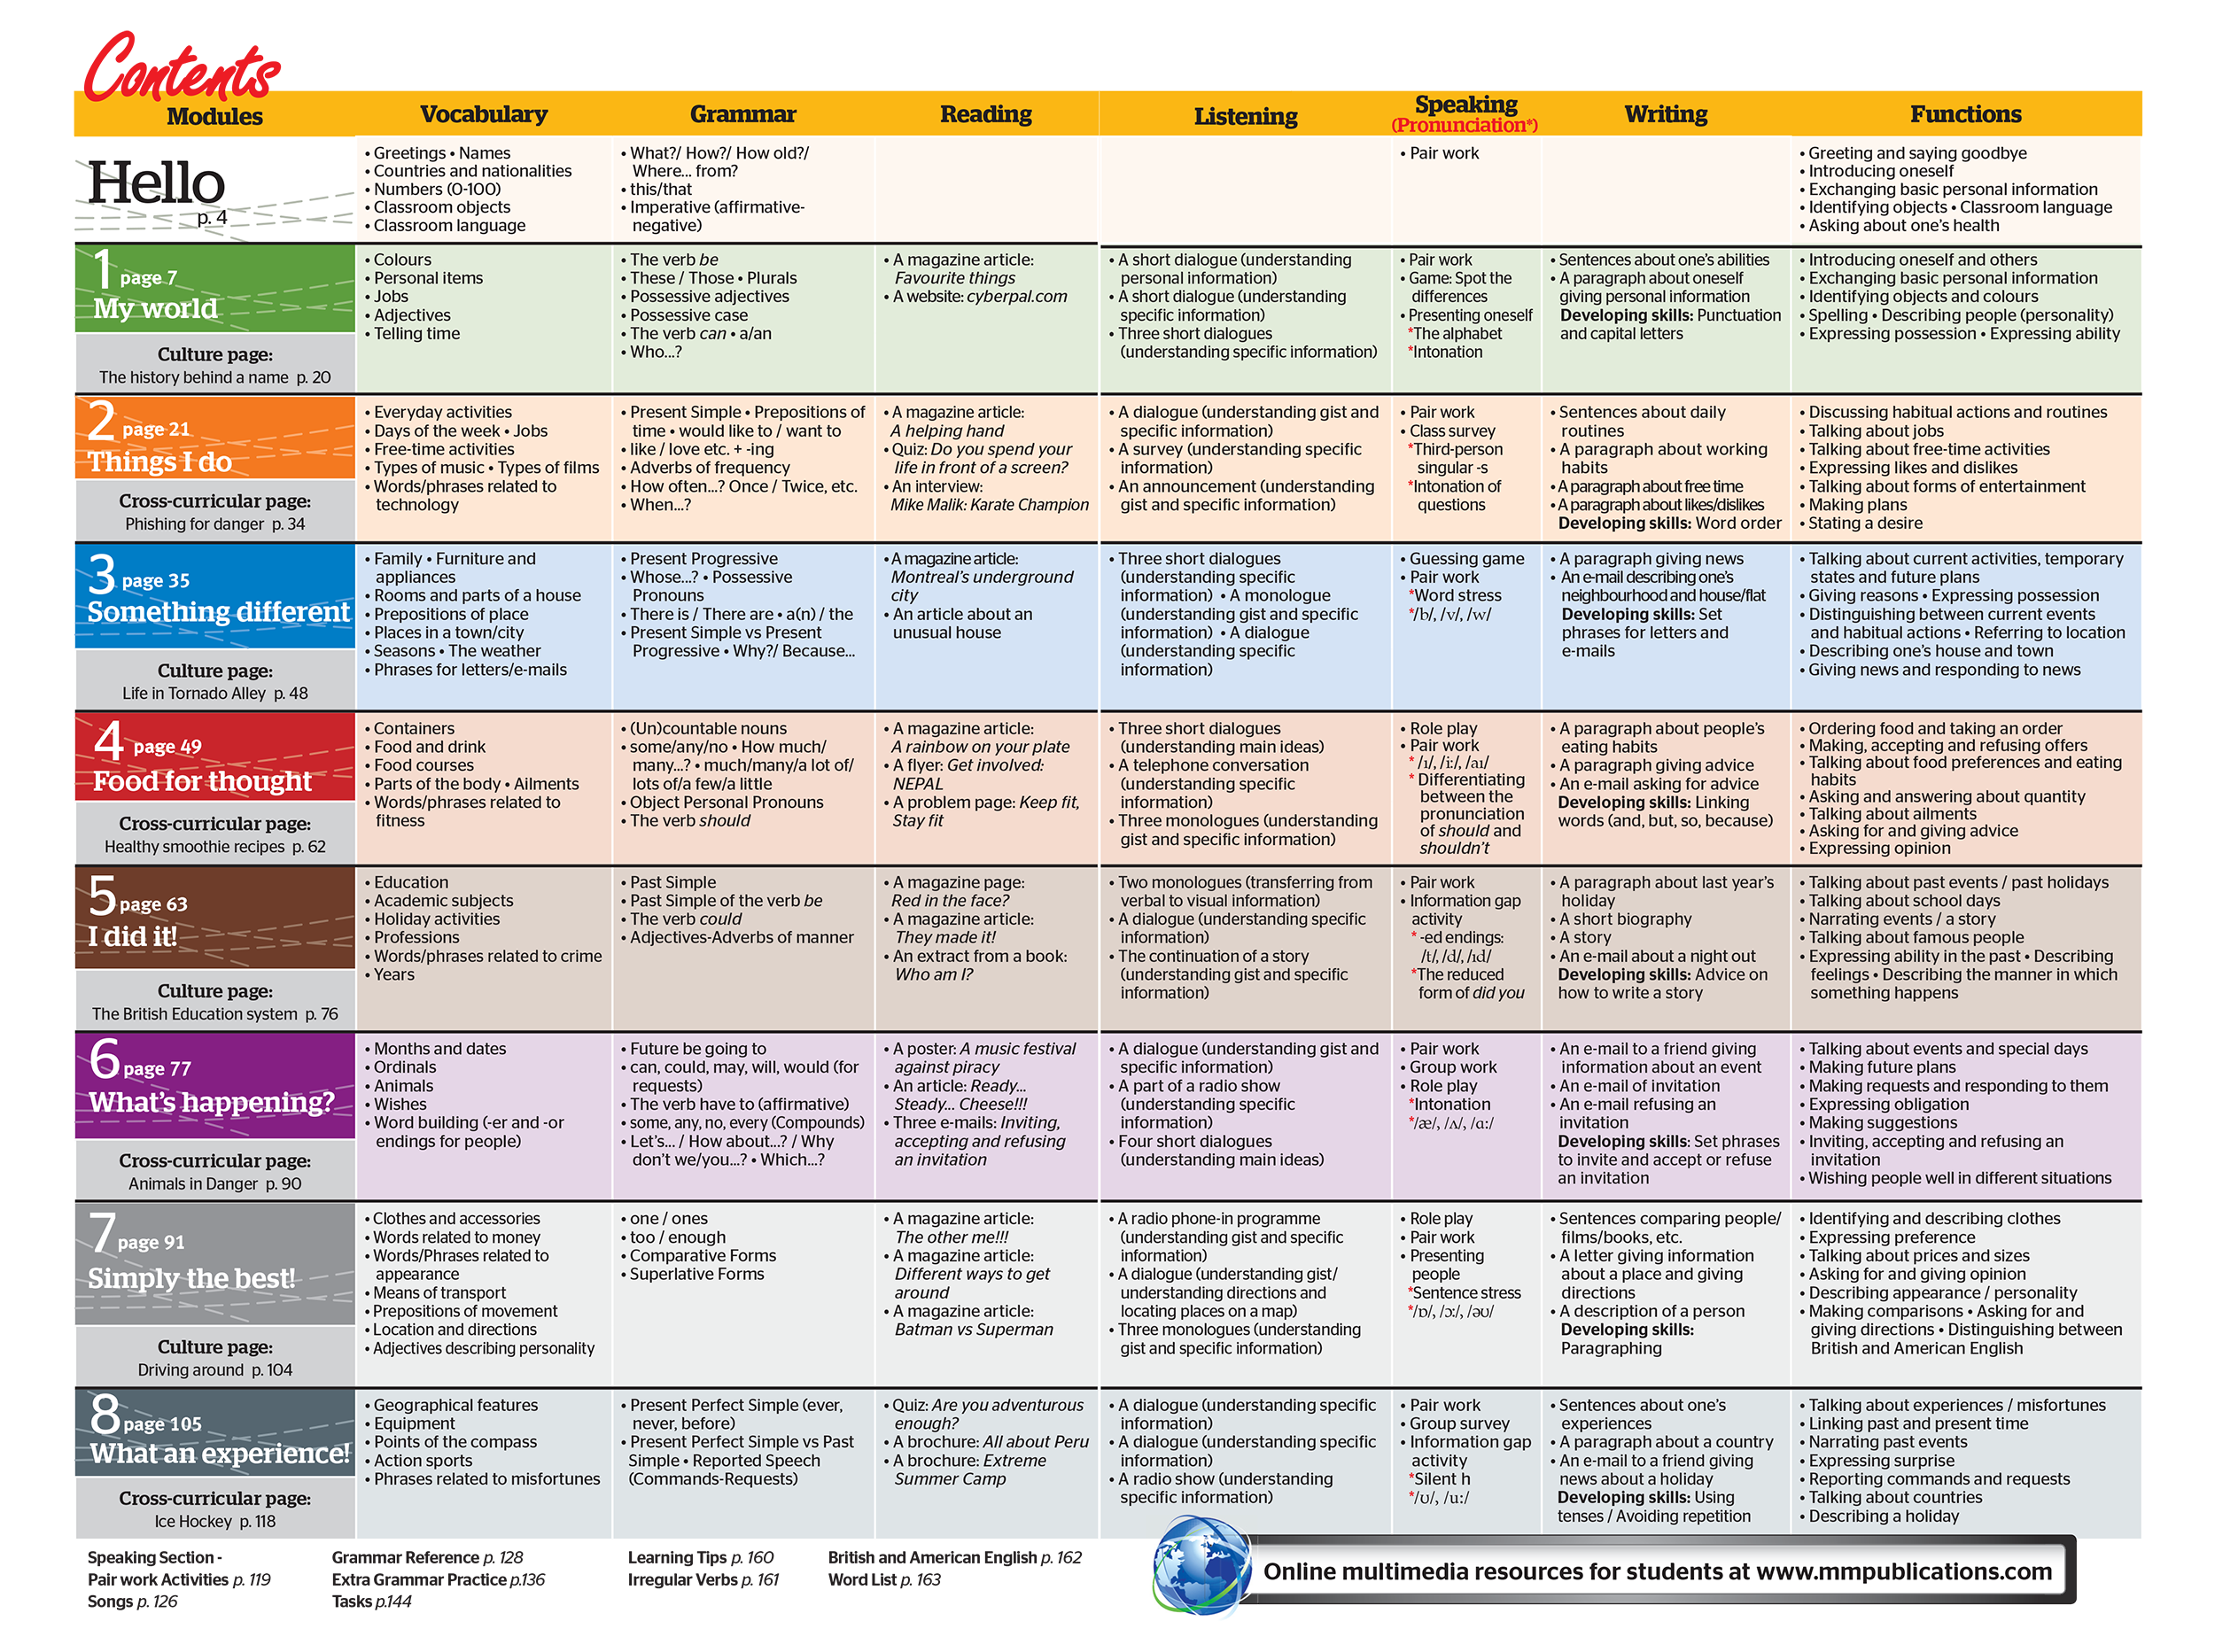 To view the complete syllabus of topics functions and skills for each